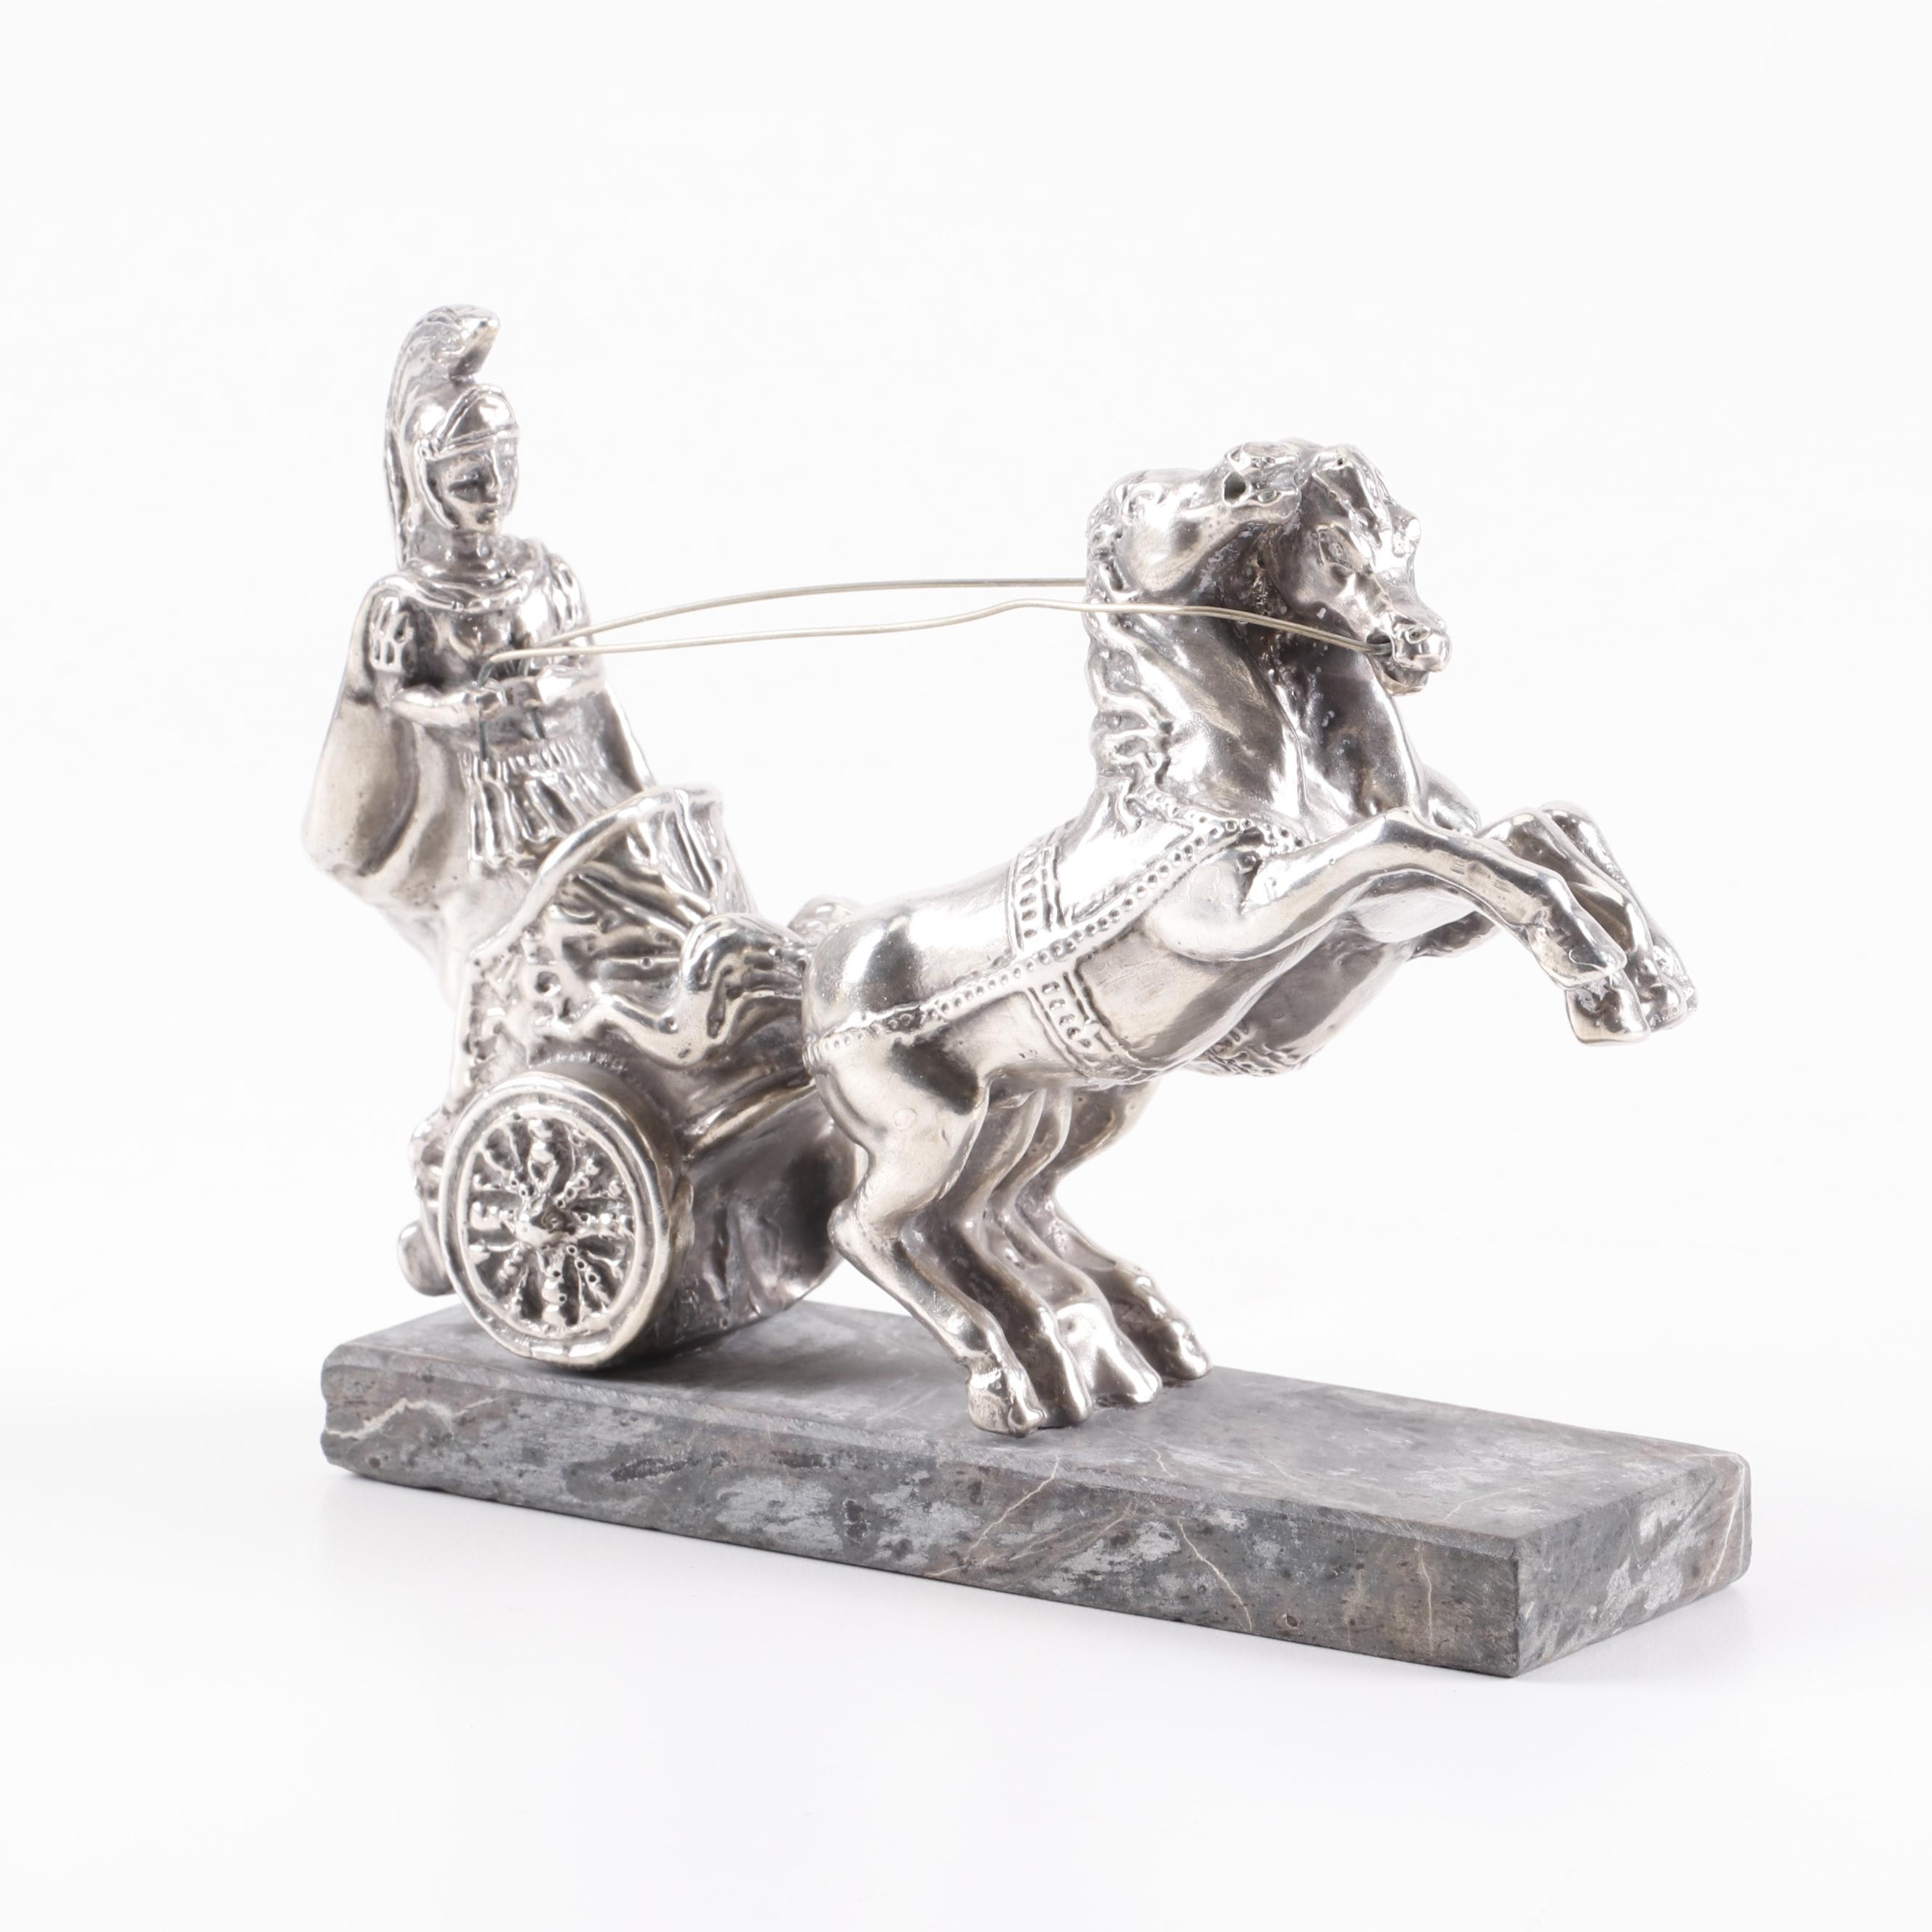 Silver Plated Roman Chariot Sculpture